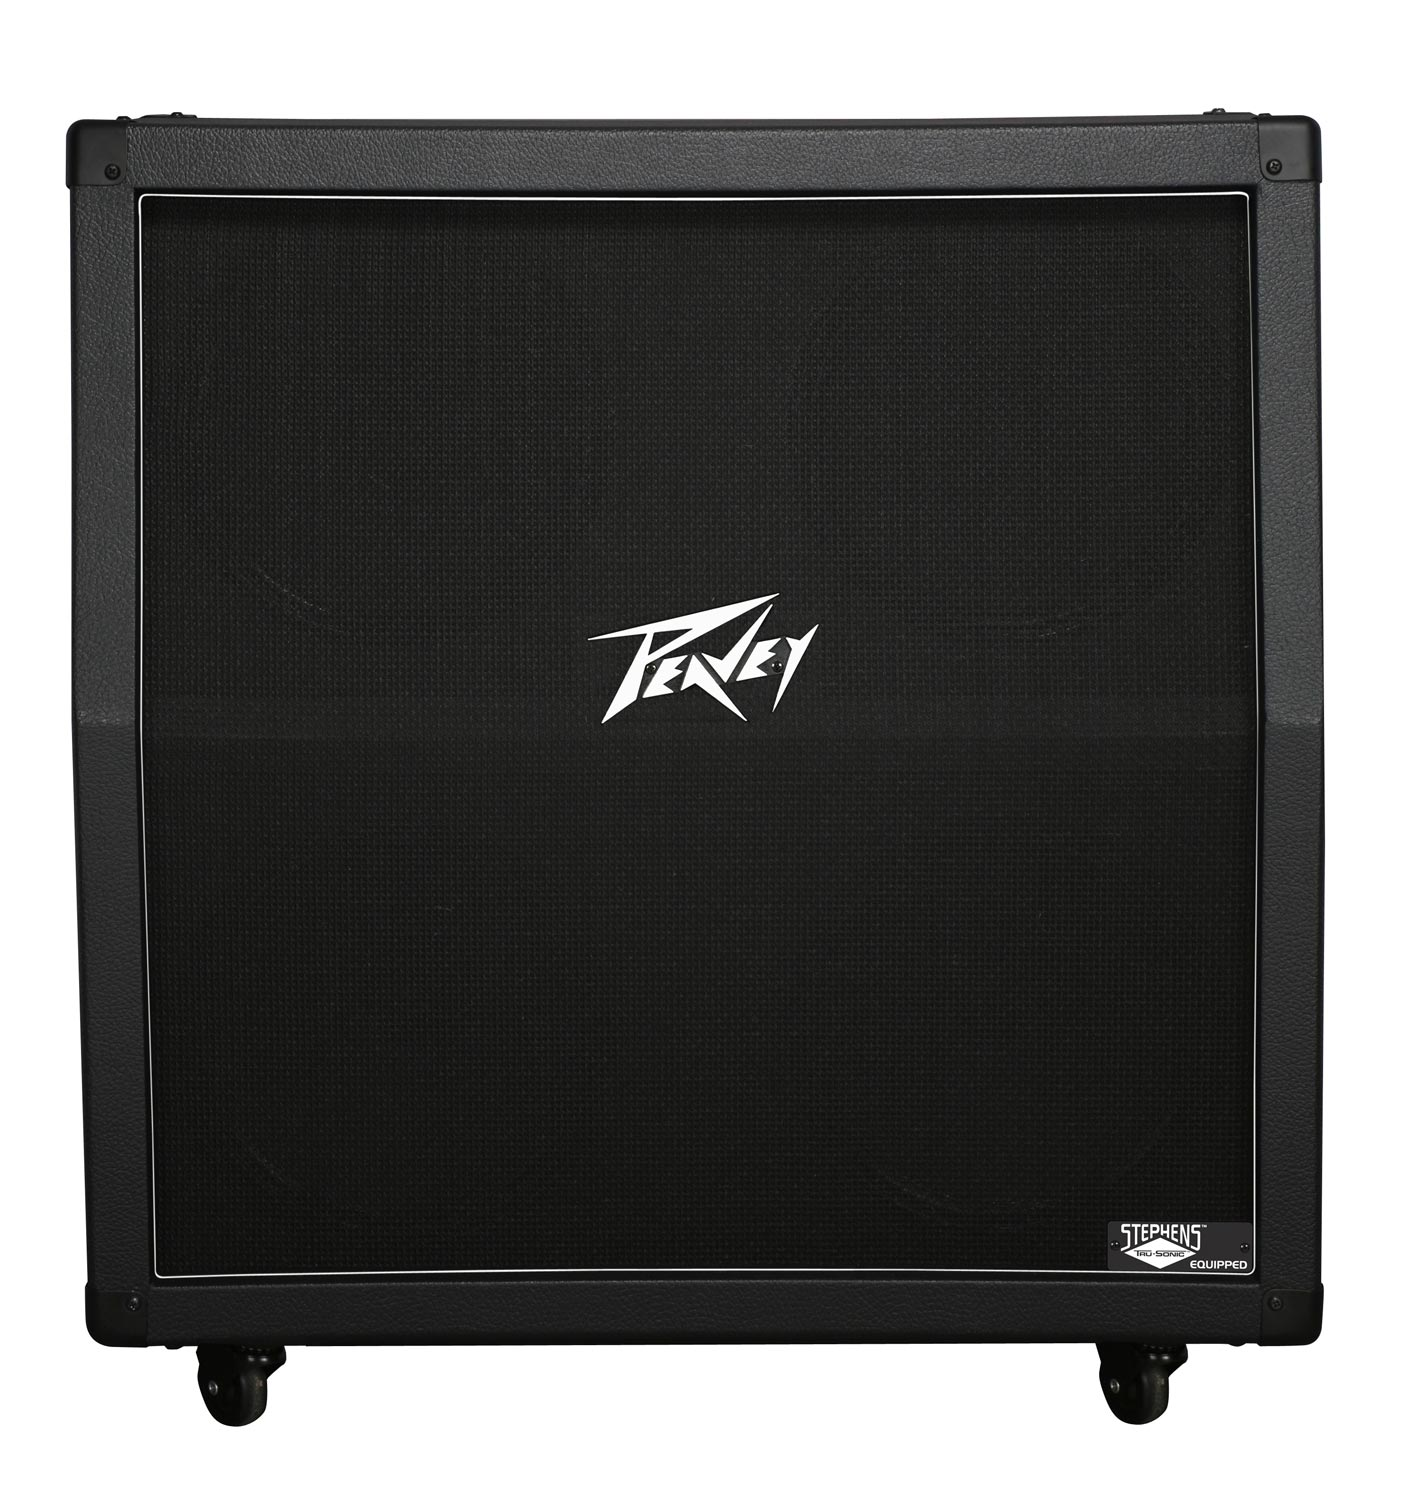 Peavey 430A 412 Cabinet